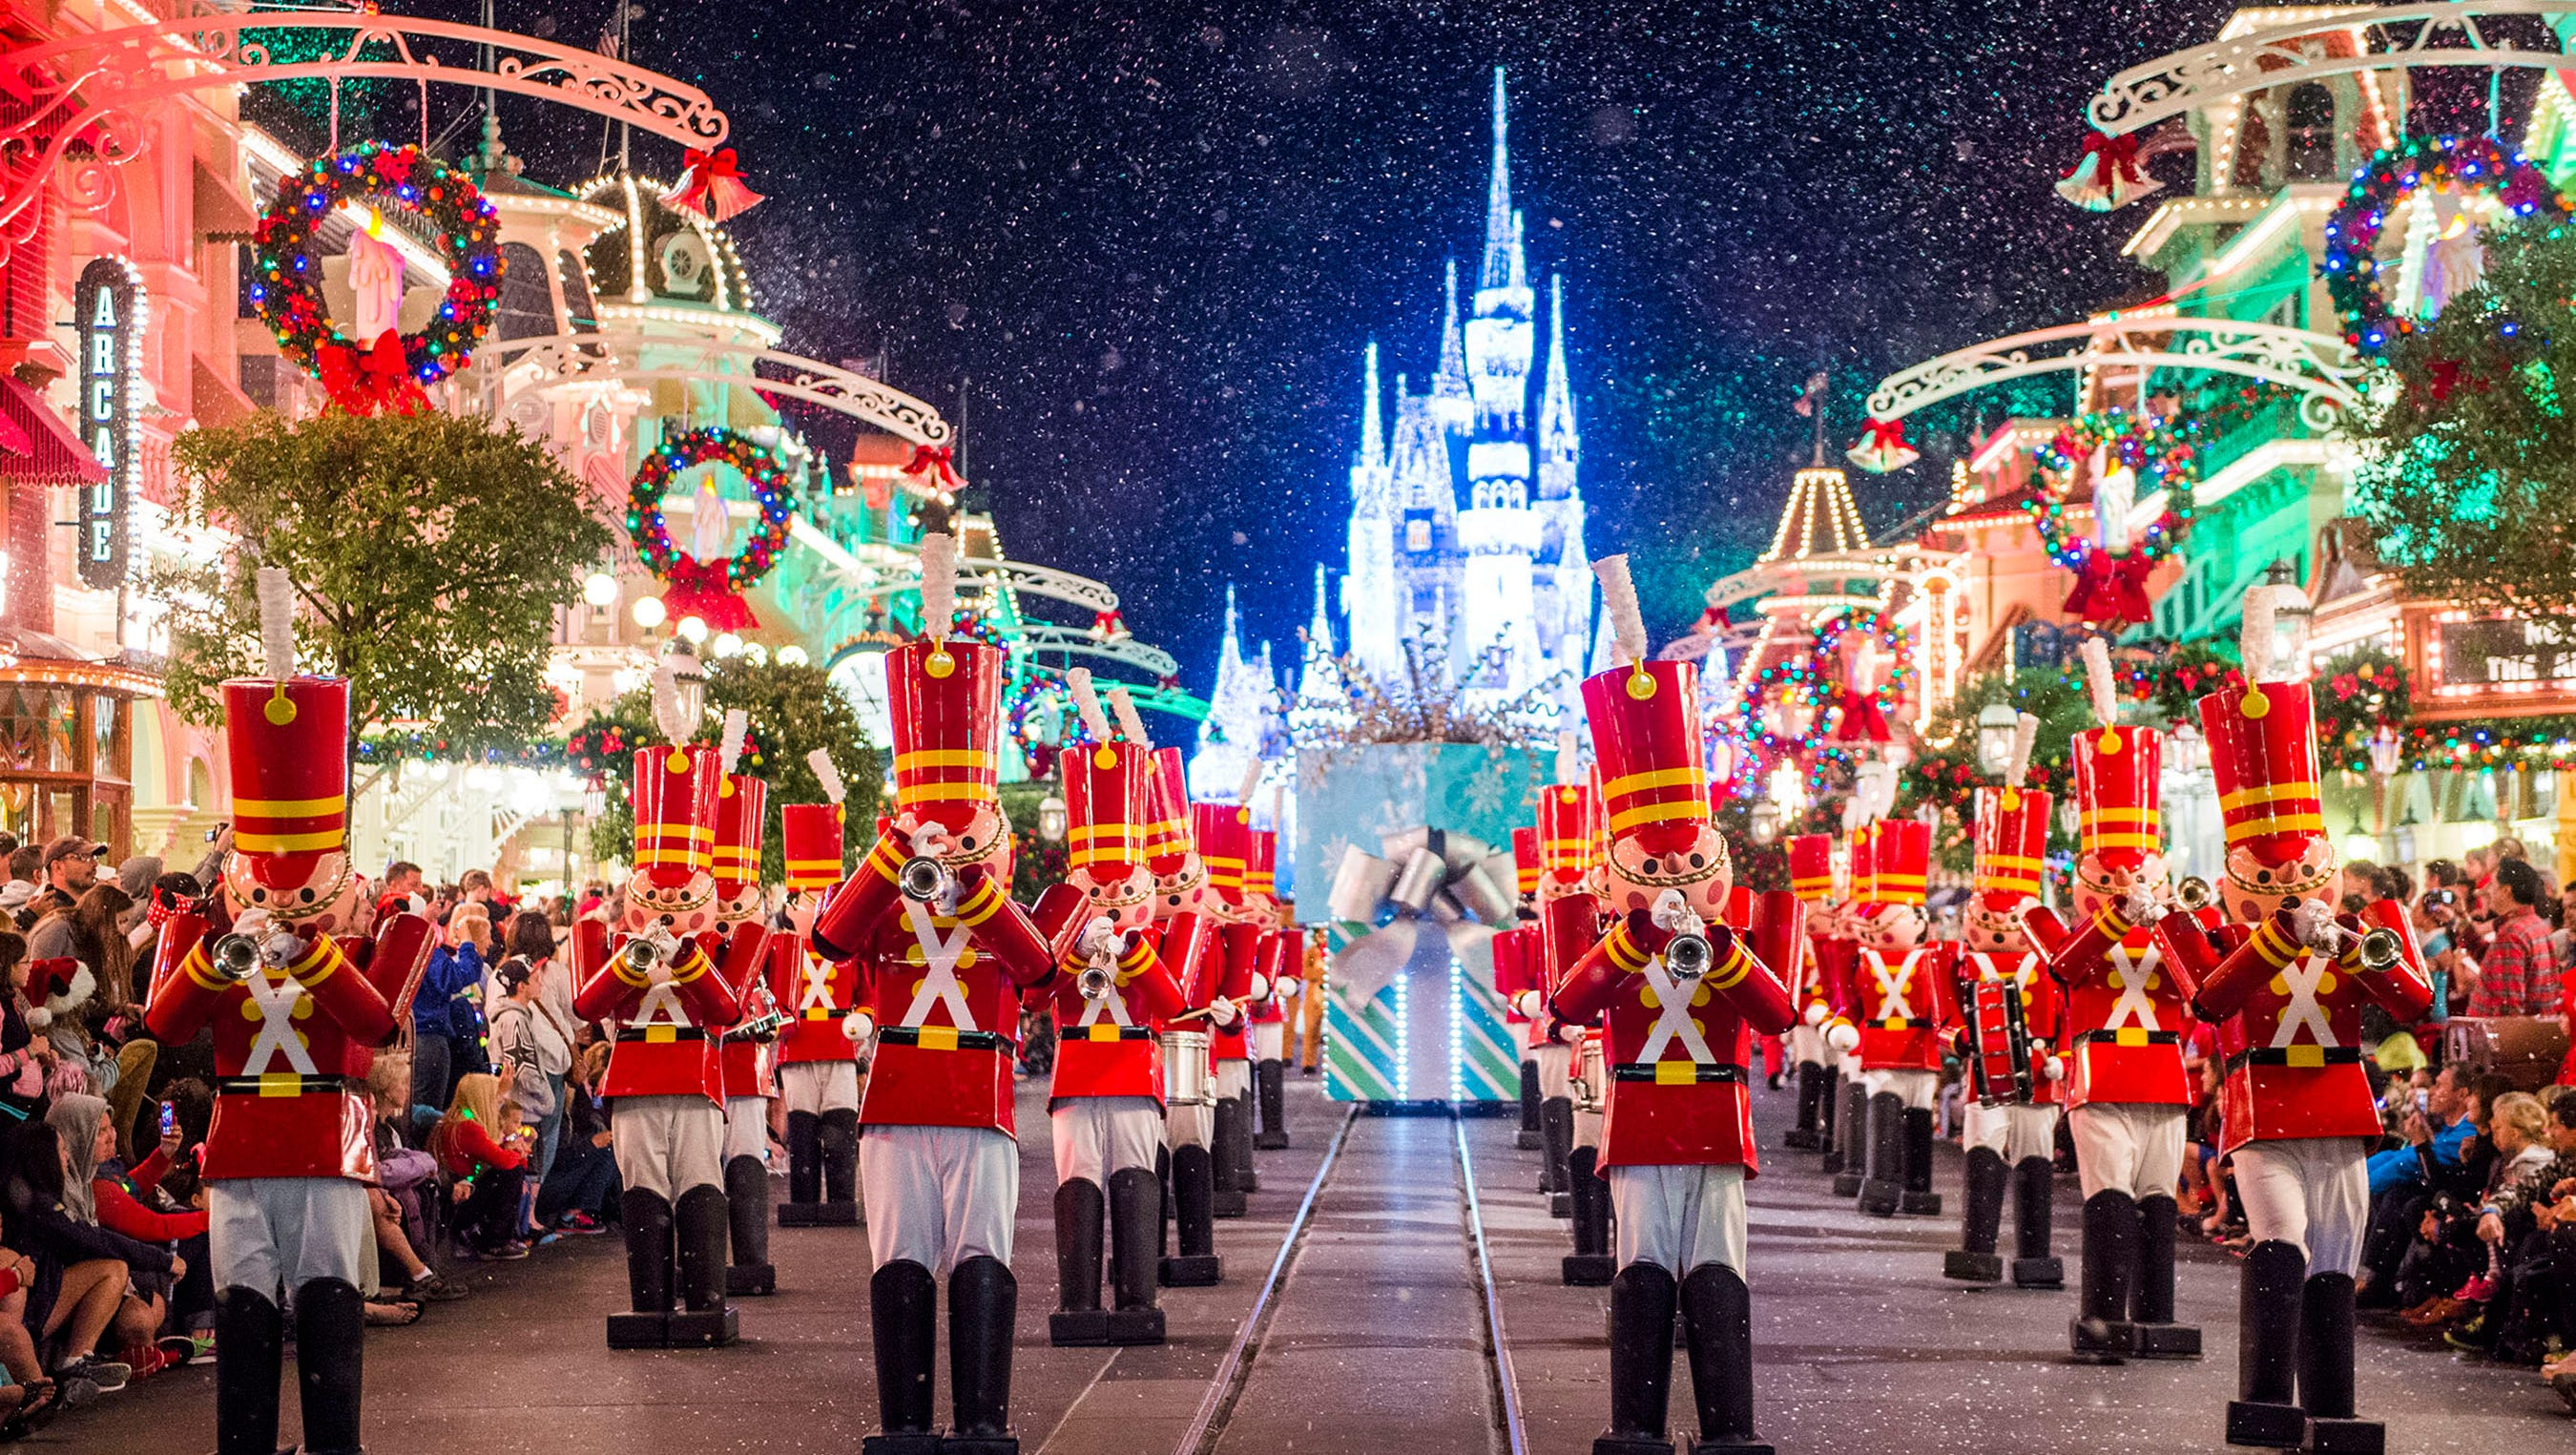 disney world transformed for christmas see all the decorations - When Does Disneyland Decorate For Christmas 2018